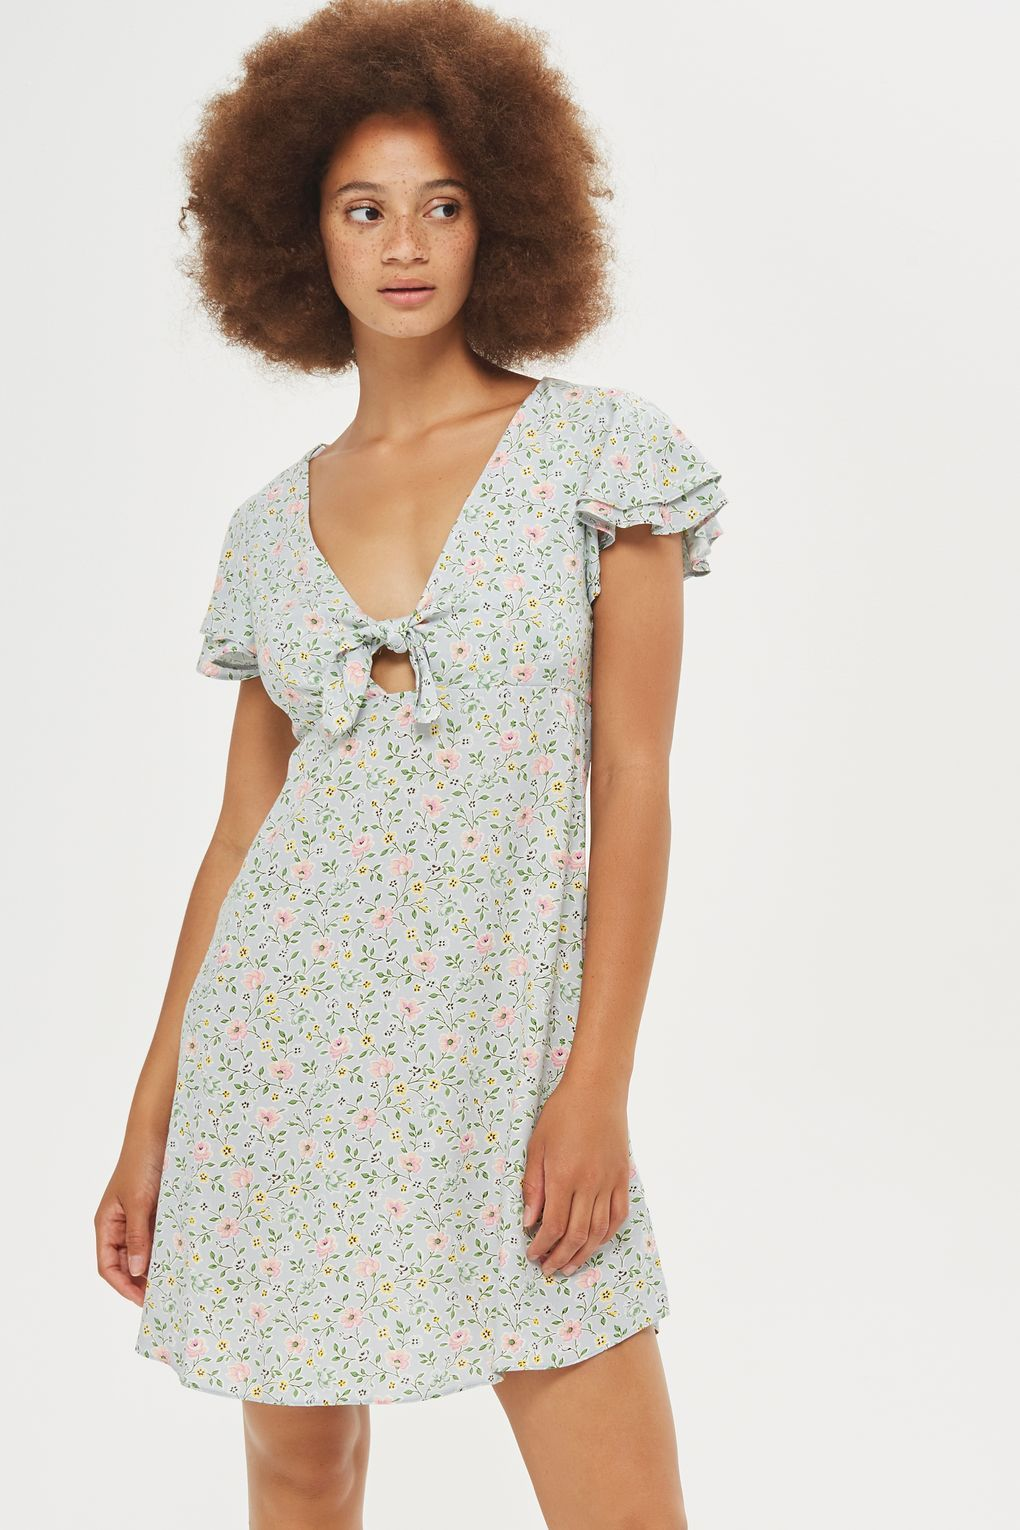 **Floral Ditsy Print Tie Front Skater Dress by Nobody's Child - Clothing- Topshop Europe